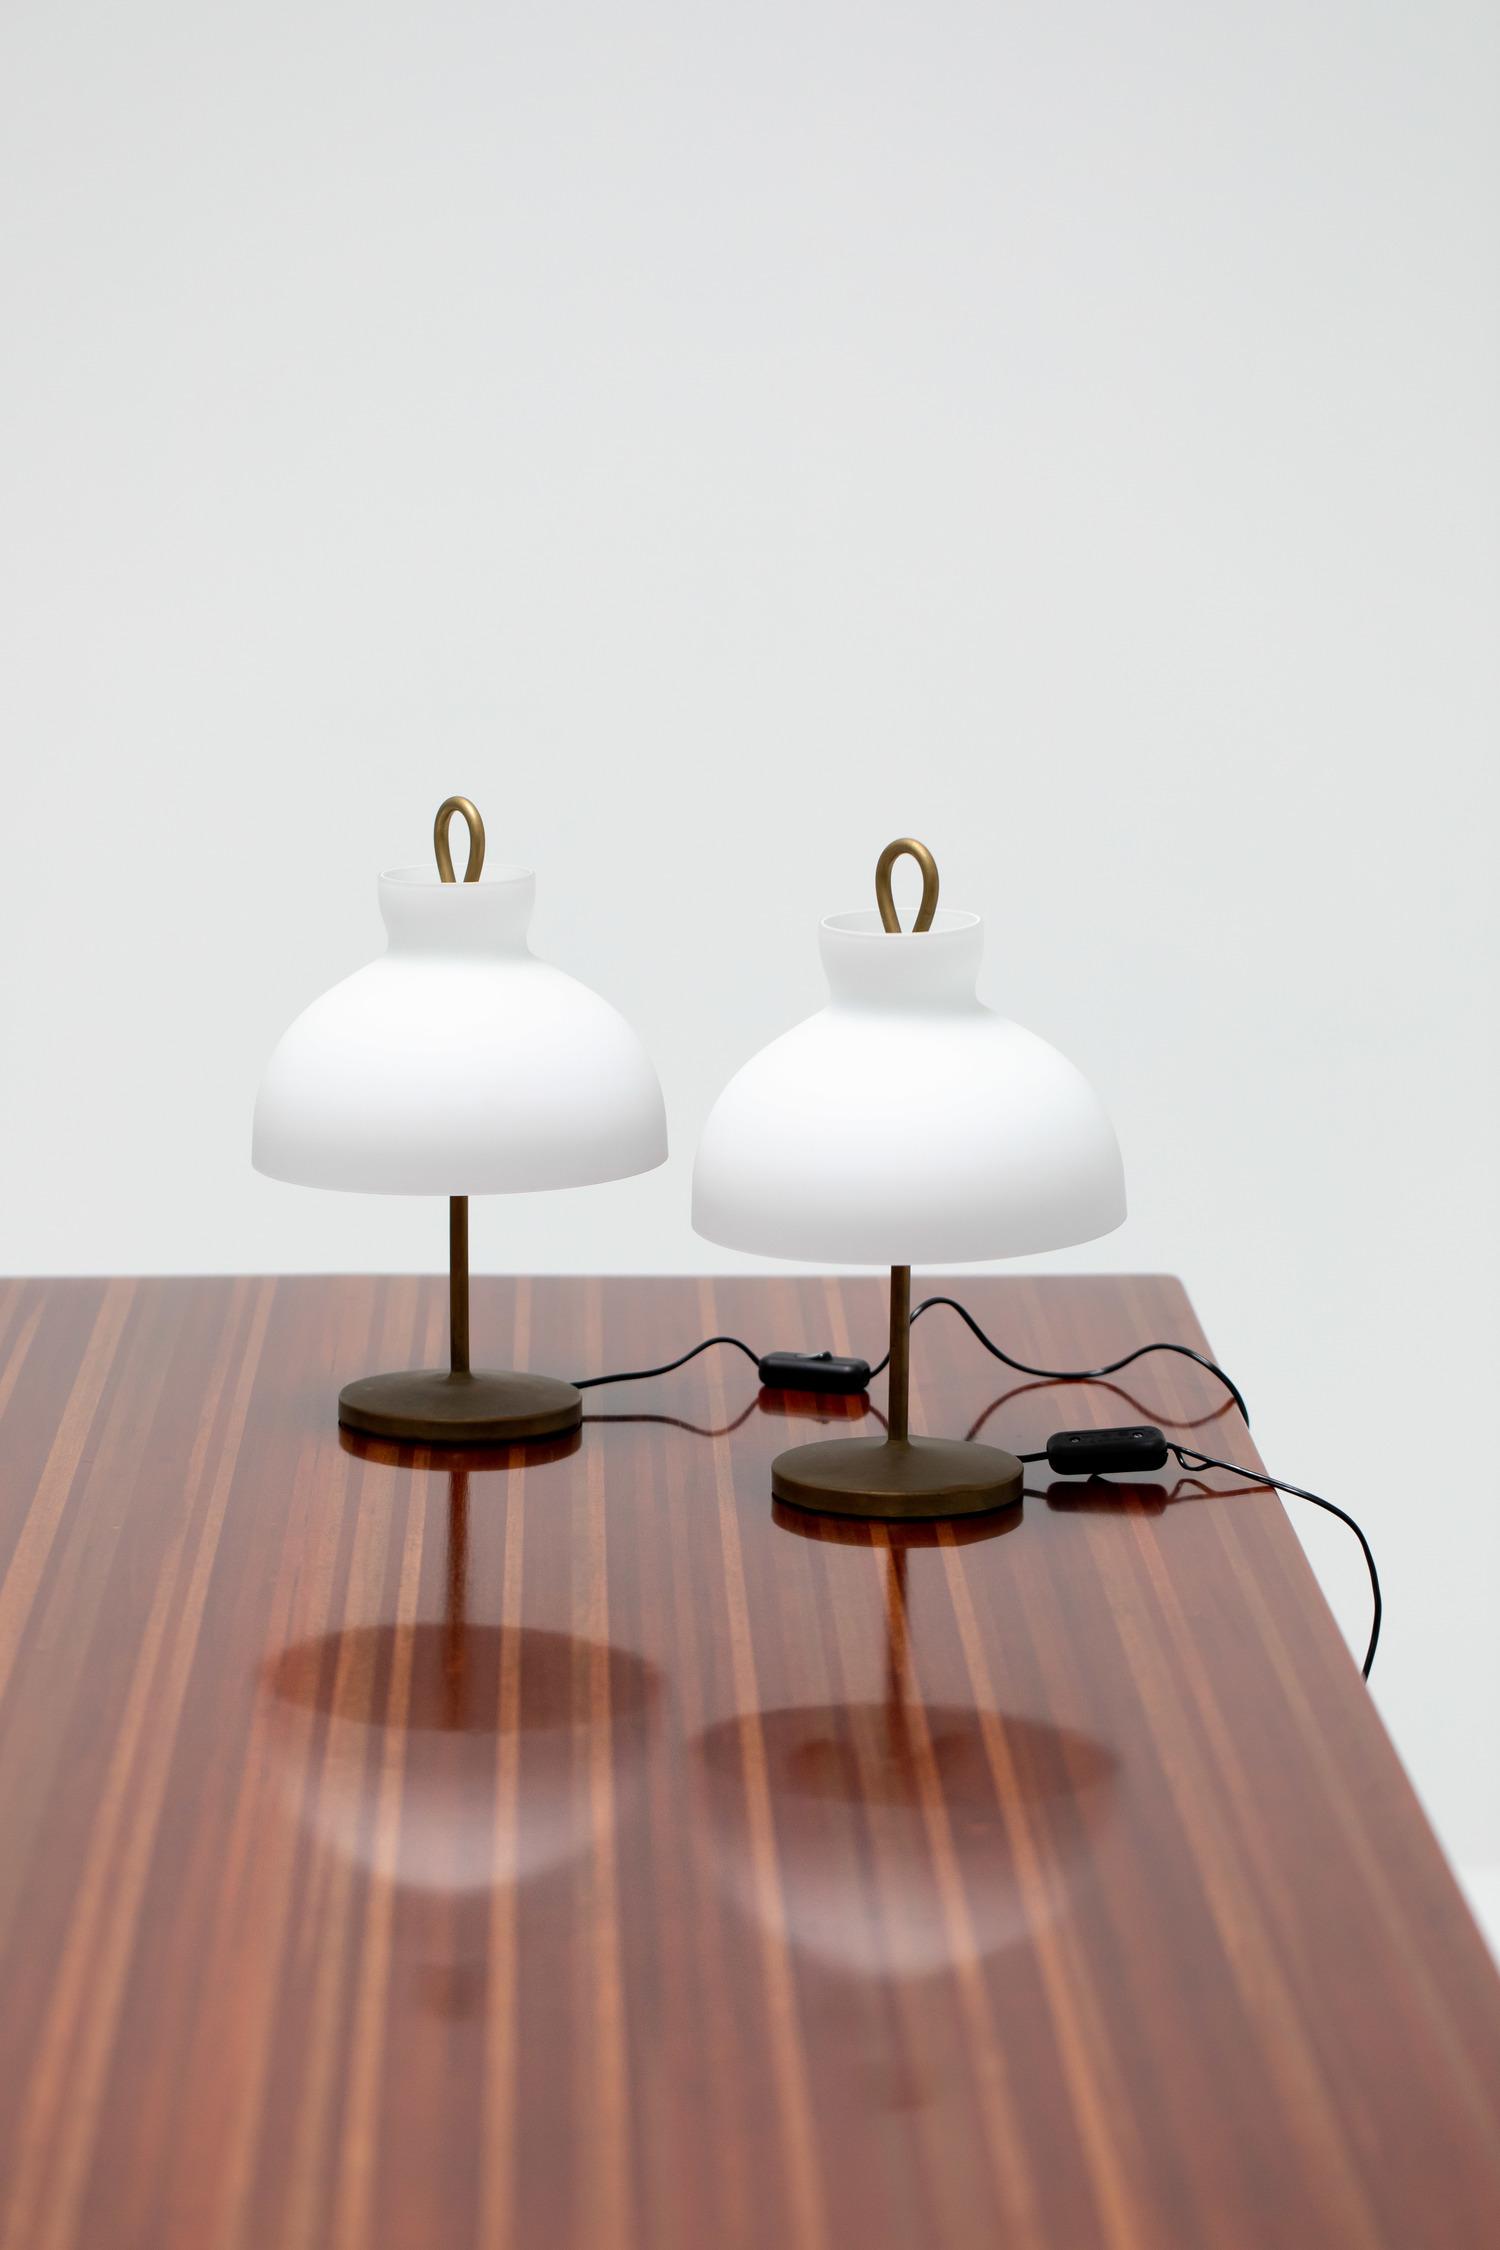 Arenzano Table Lamps by Ignazio Gardella